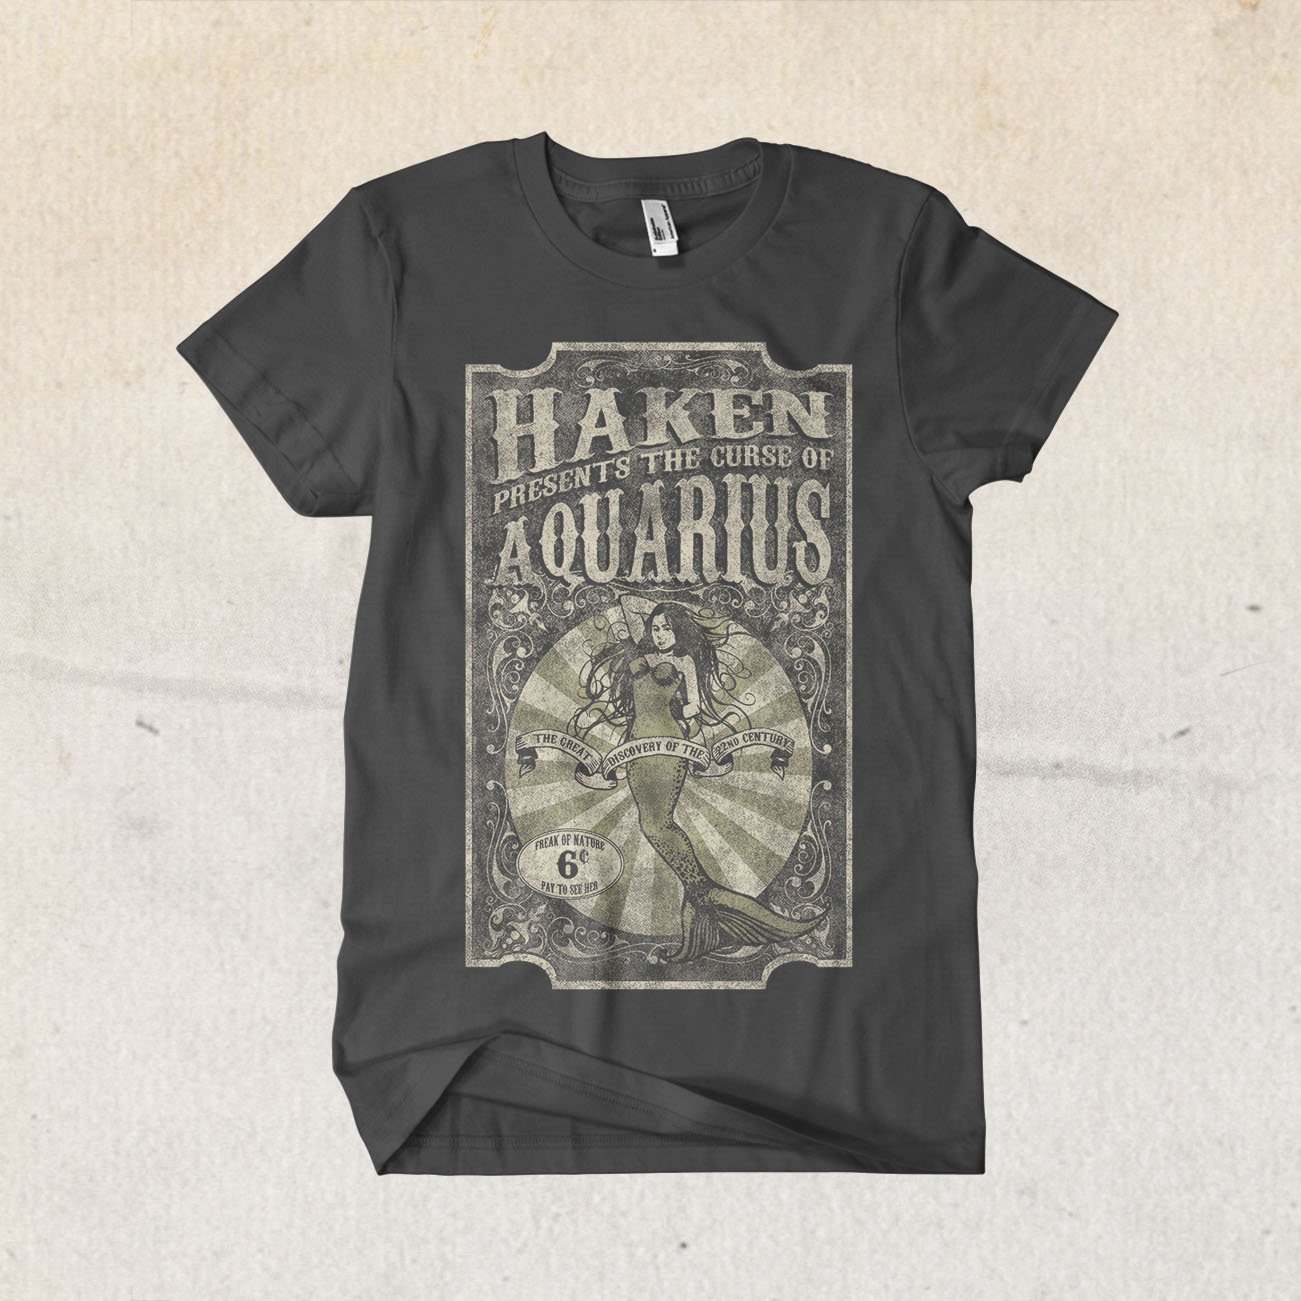 Haken - 'Aquarius' T-Shirt - Haken